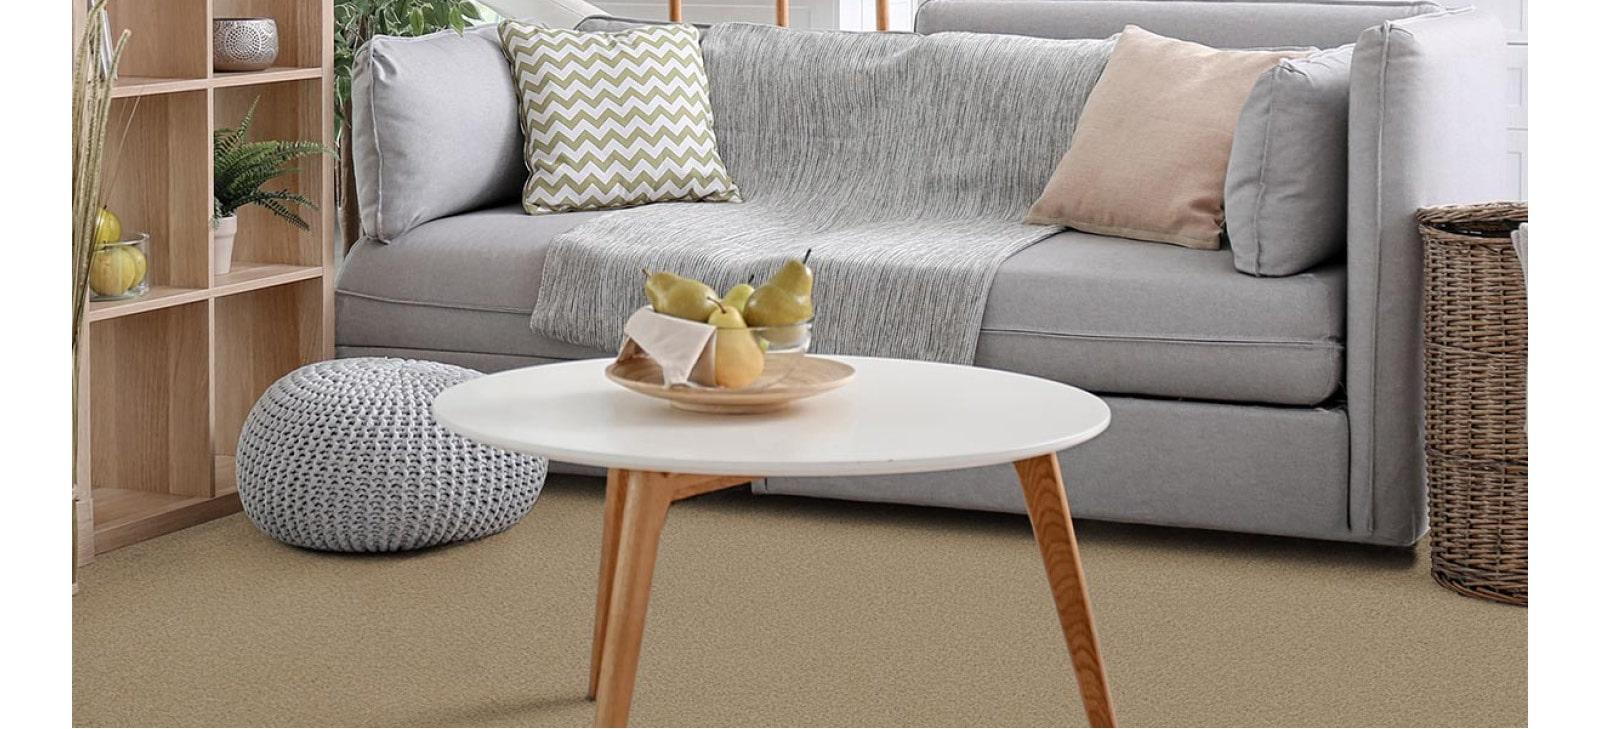 Lounge Roomset with Beige Carpet